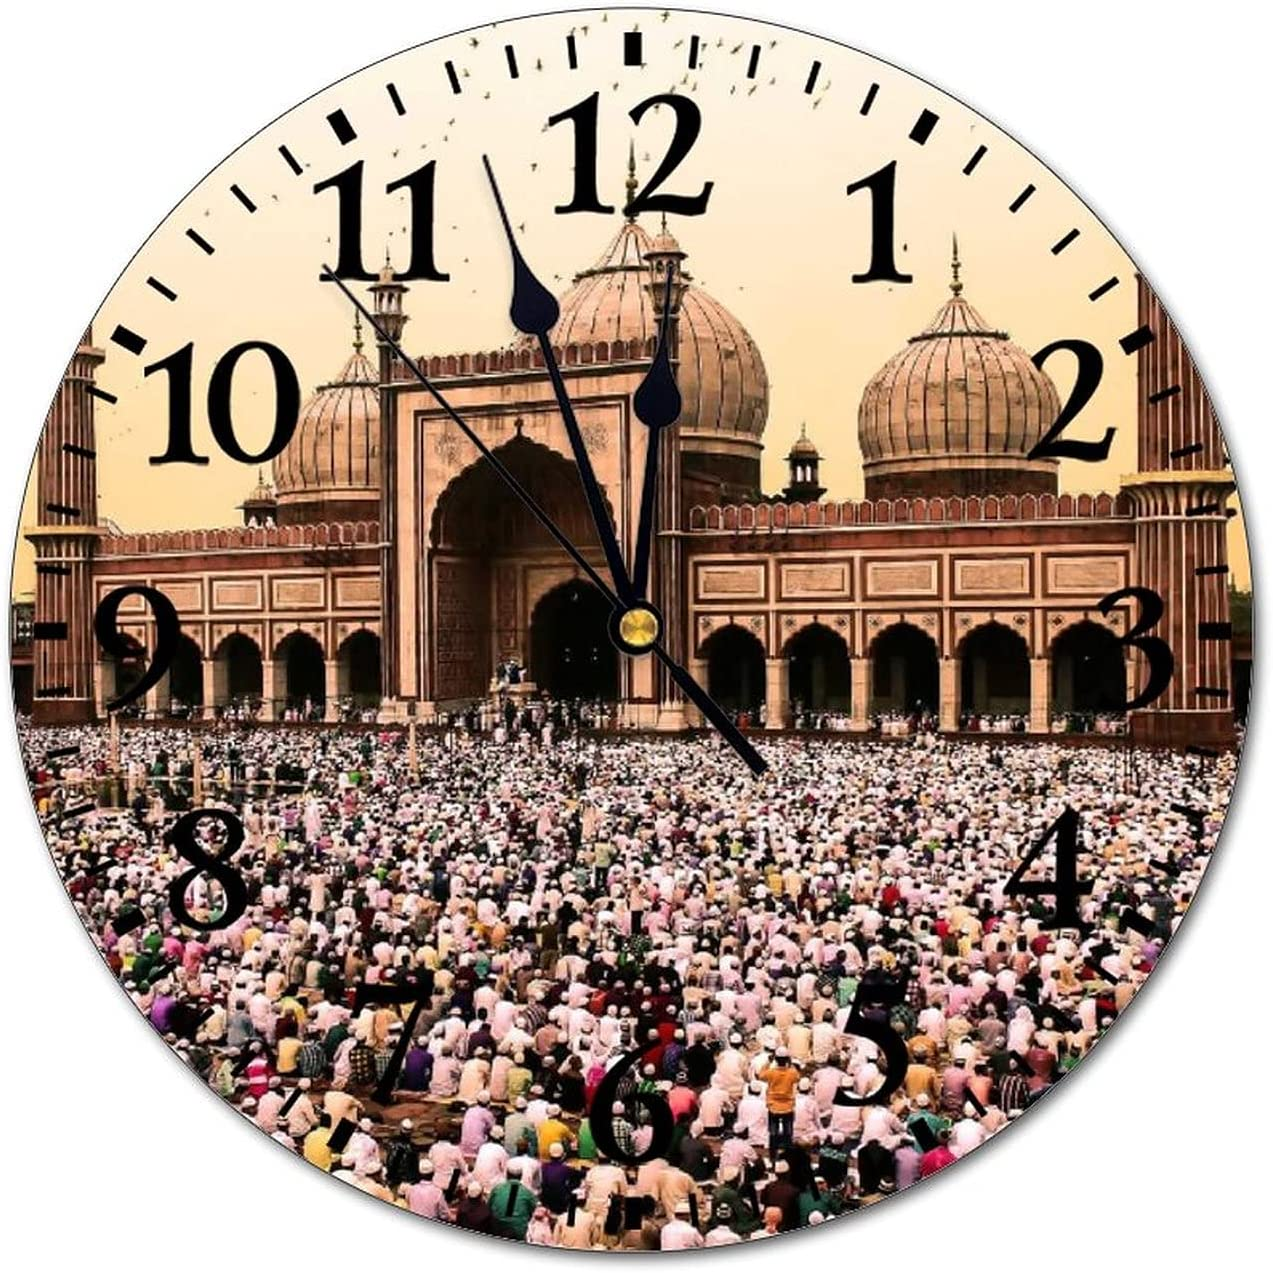 Anyuwerw Jama Masjid Delhi Sales of SALE items from new works Vintage Wood Wall Roun Inch 12 High material Clock